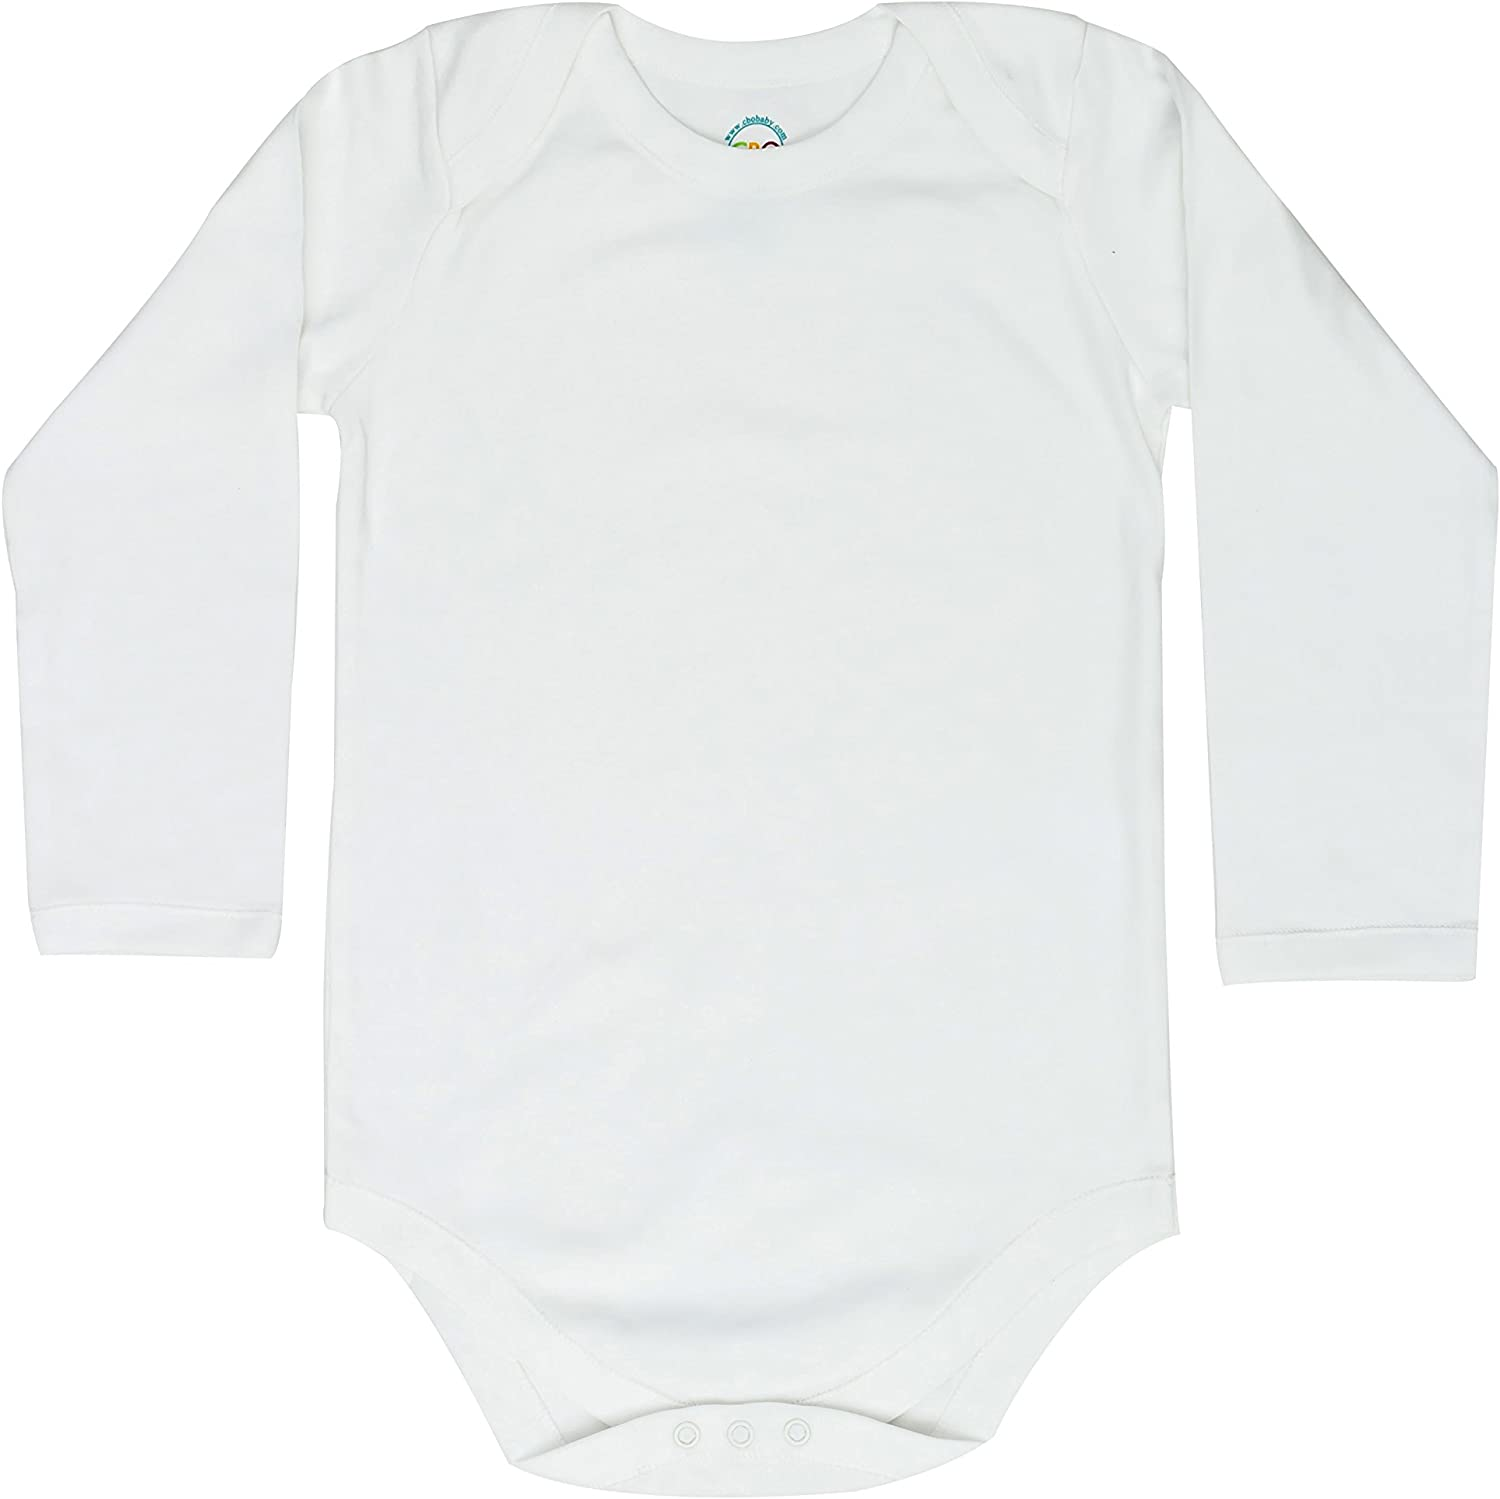 CBObabyLarge Size Long Sleeve Envelope Neck Bodysuit